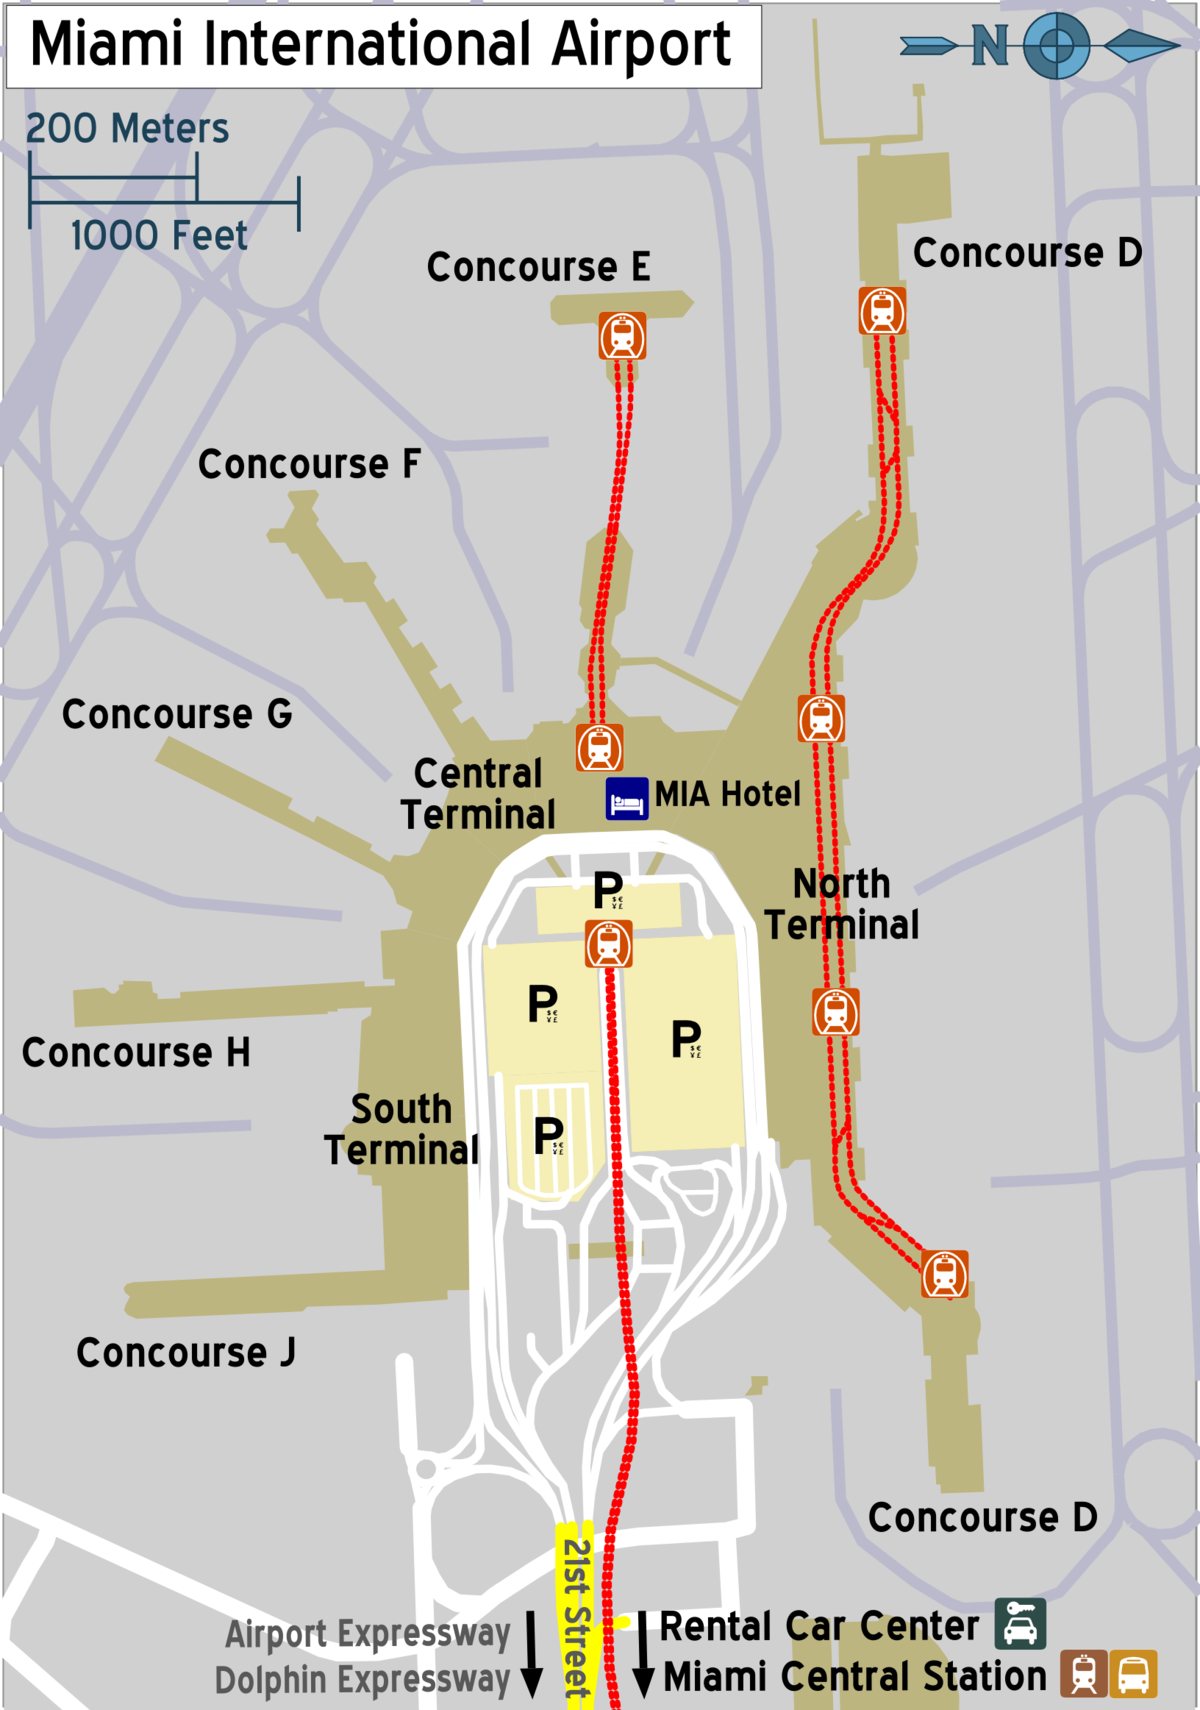 Map Of Miami Airport Miami International Airport – Travel guide at Wikivoyage